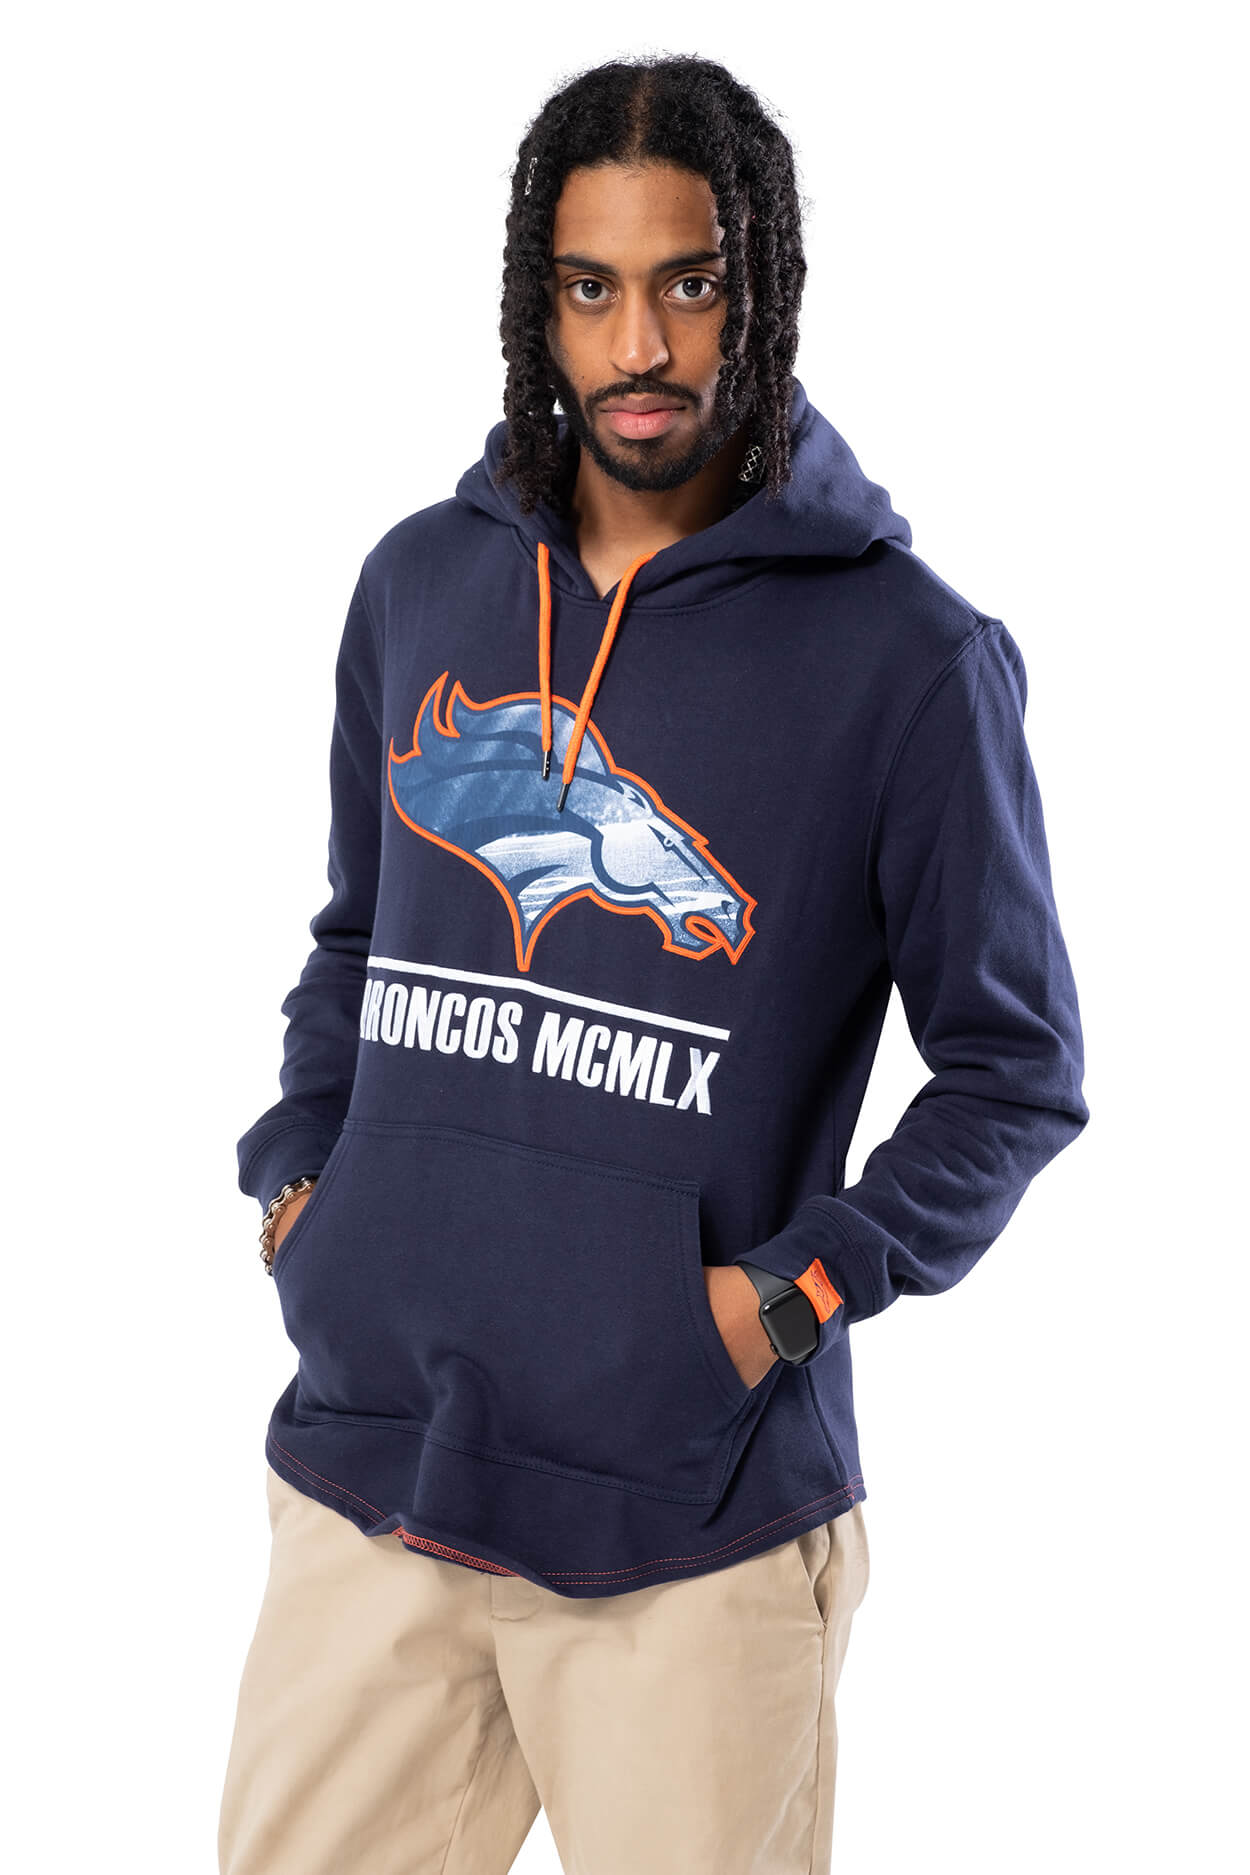 NFL Denver Broncos Men's Embroidered Hoodie|Denver Broncos